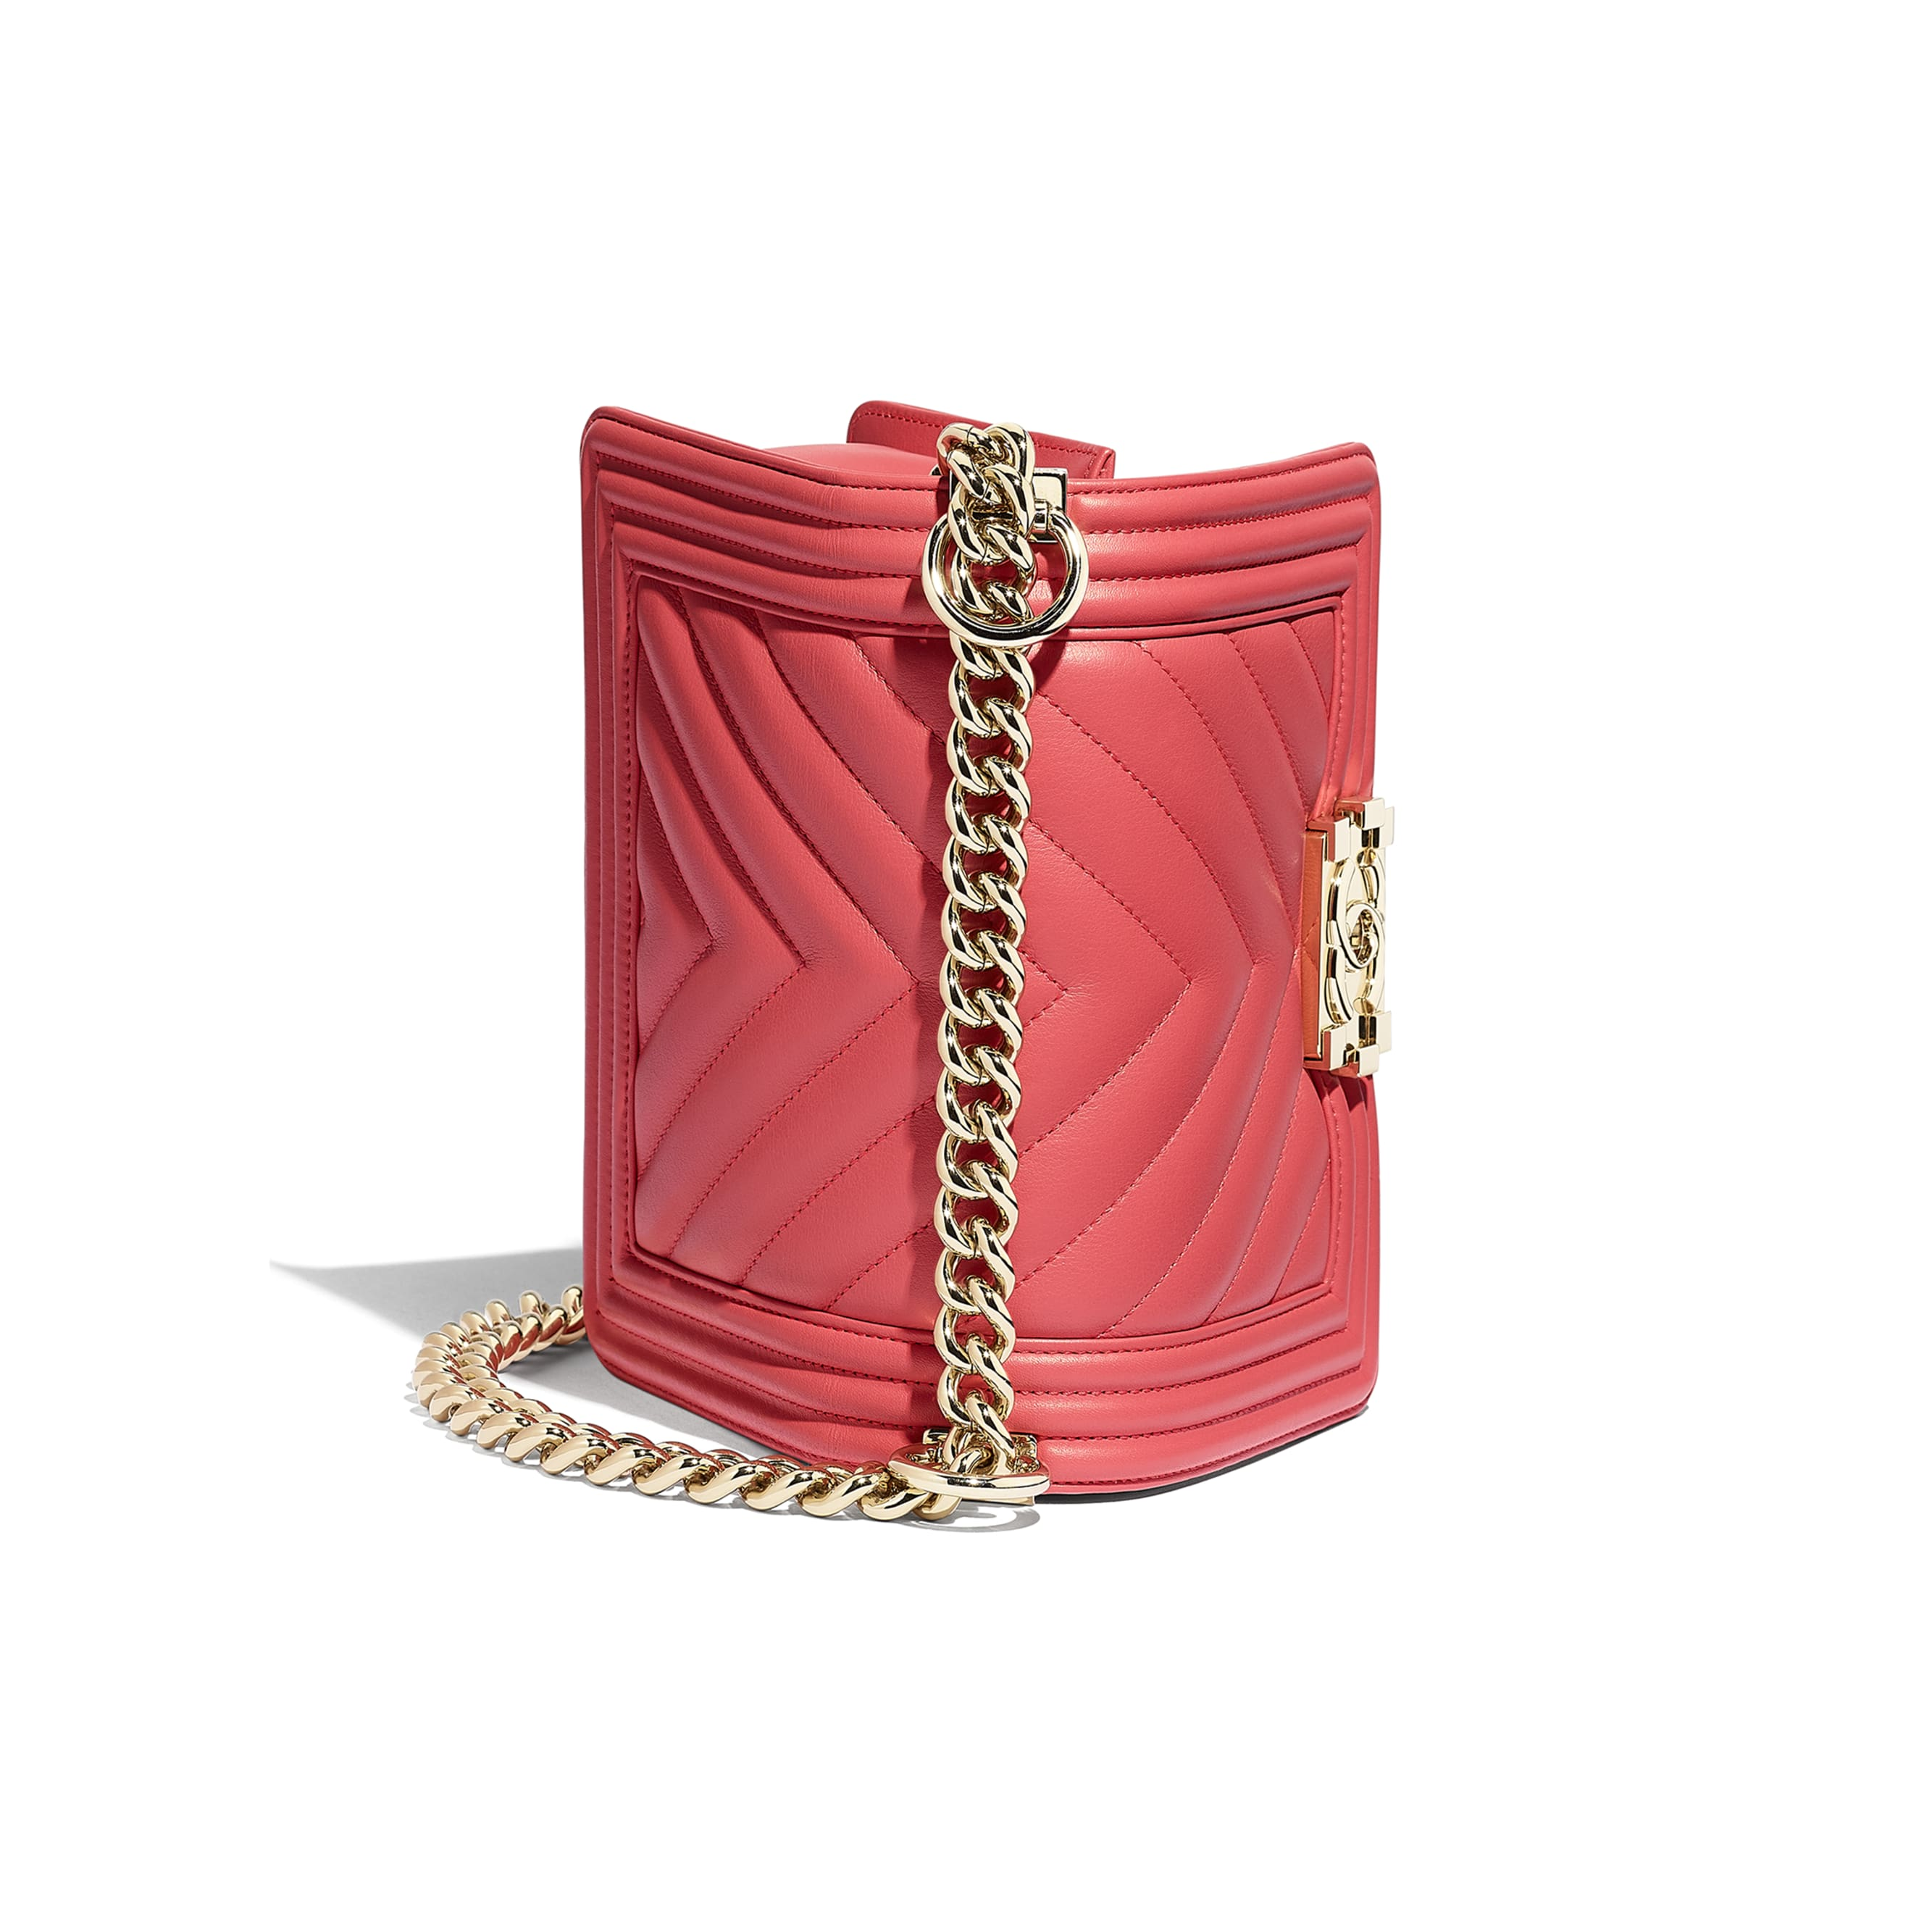 Small BOY CHANEL Handbag - Pink - Calfskin & Gold-Tone Metal - CHANEL - Other view - see standard sized version